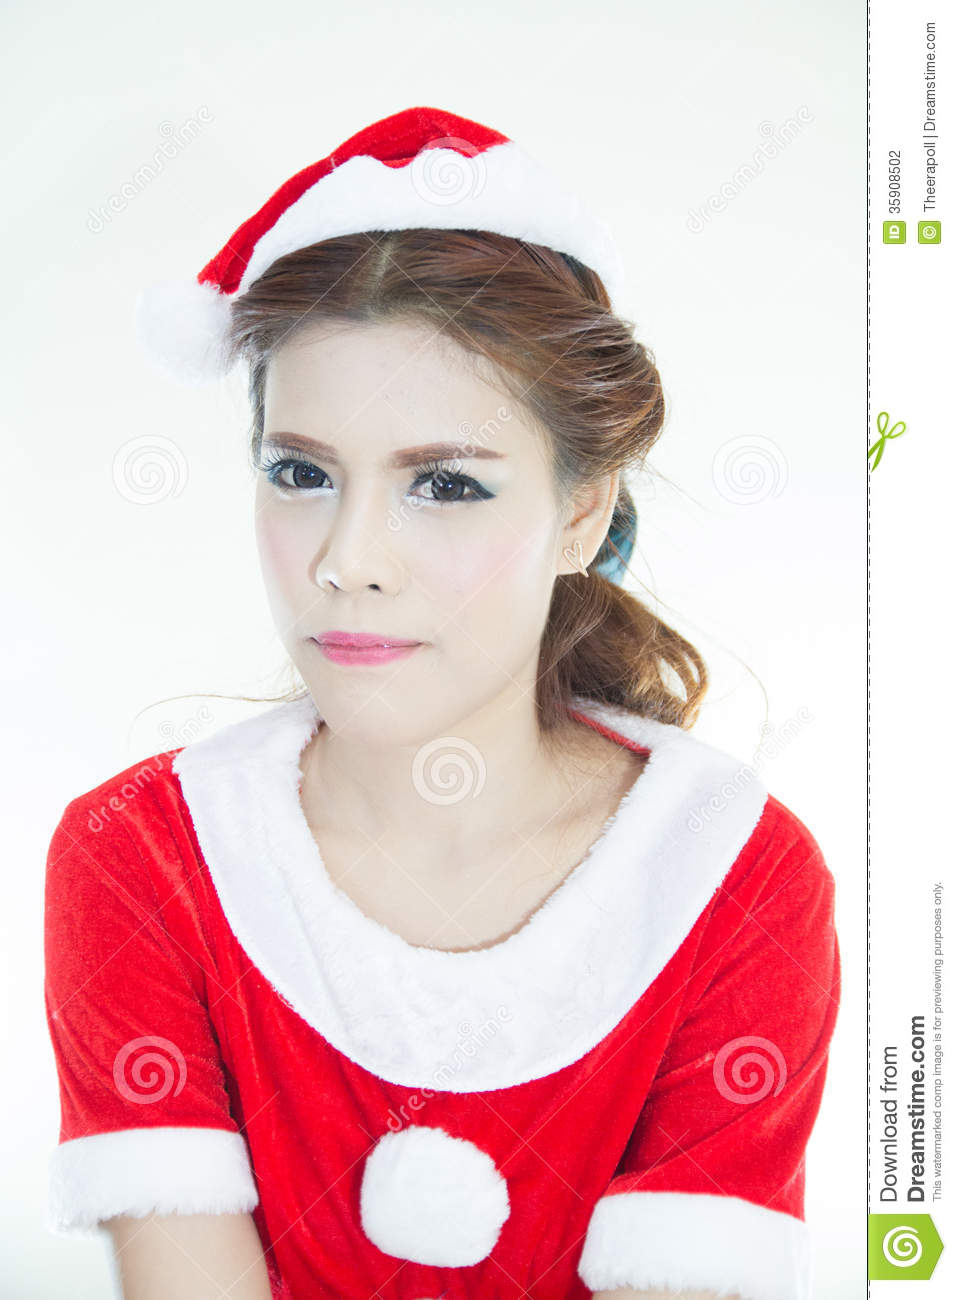 christmas asian personals Flingcom - world's best casual personals for casual dating, search millions of casual personals from singles, couples, and swingers looking for fun, browse sexy photos, personals and more.